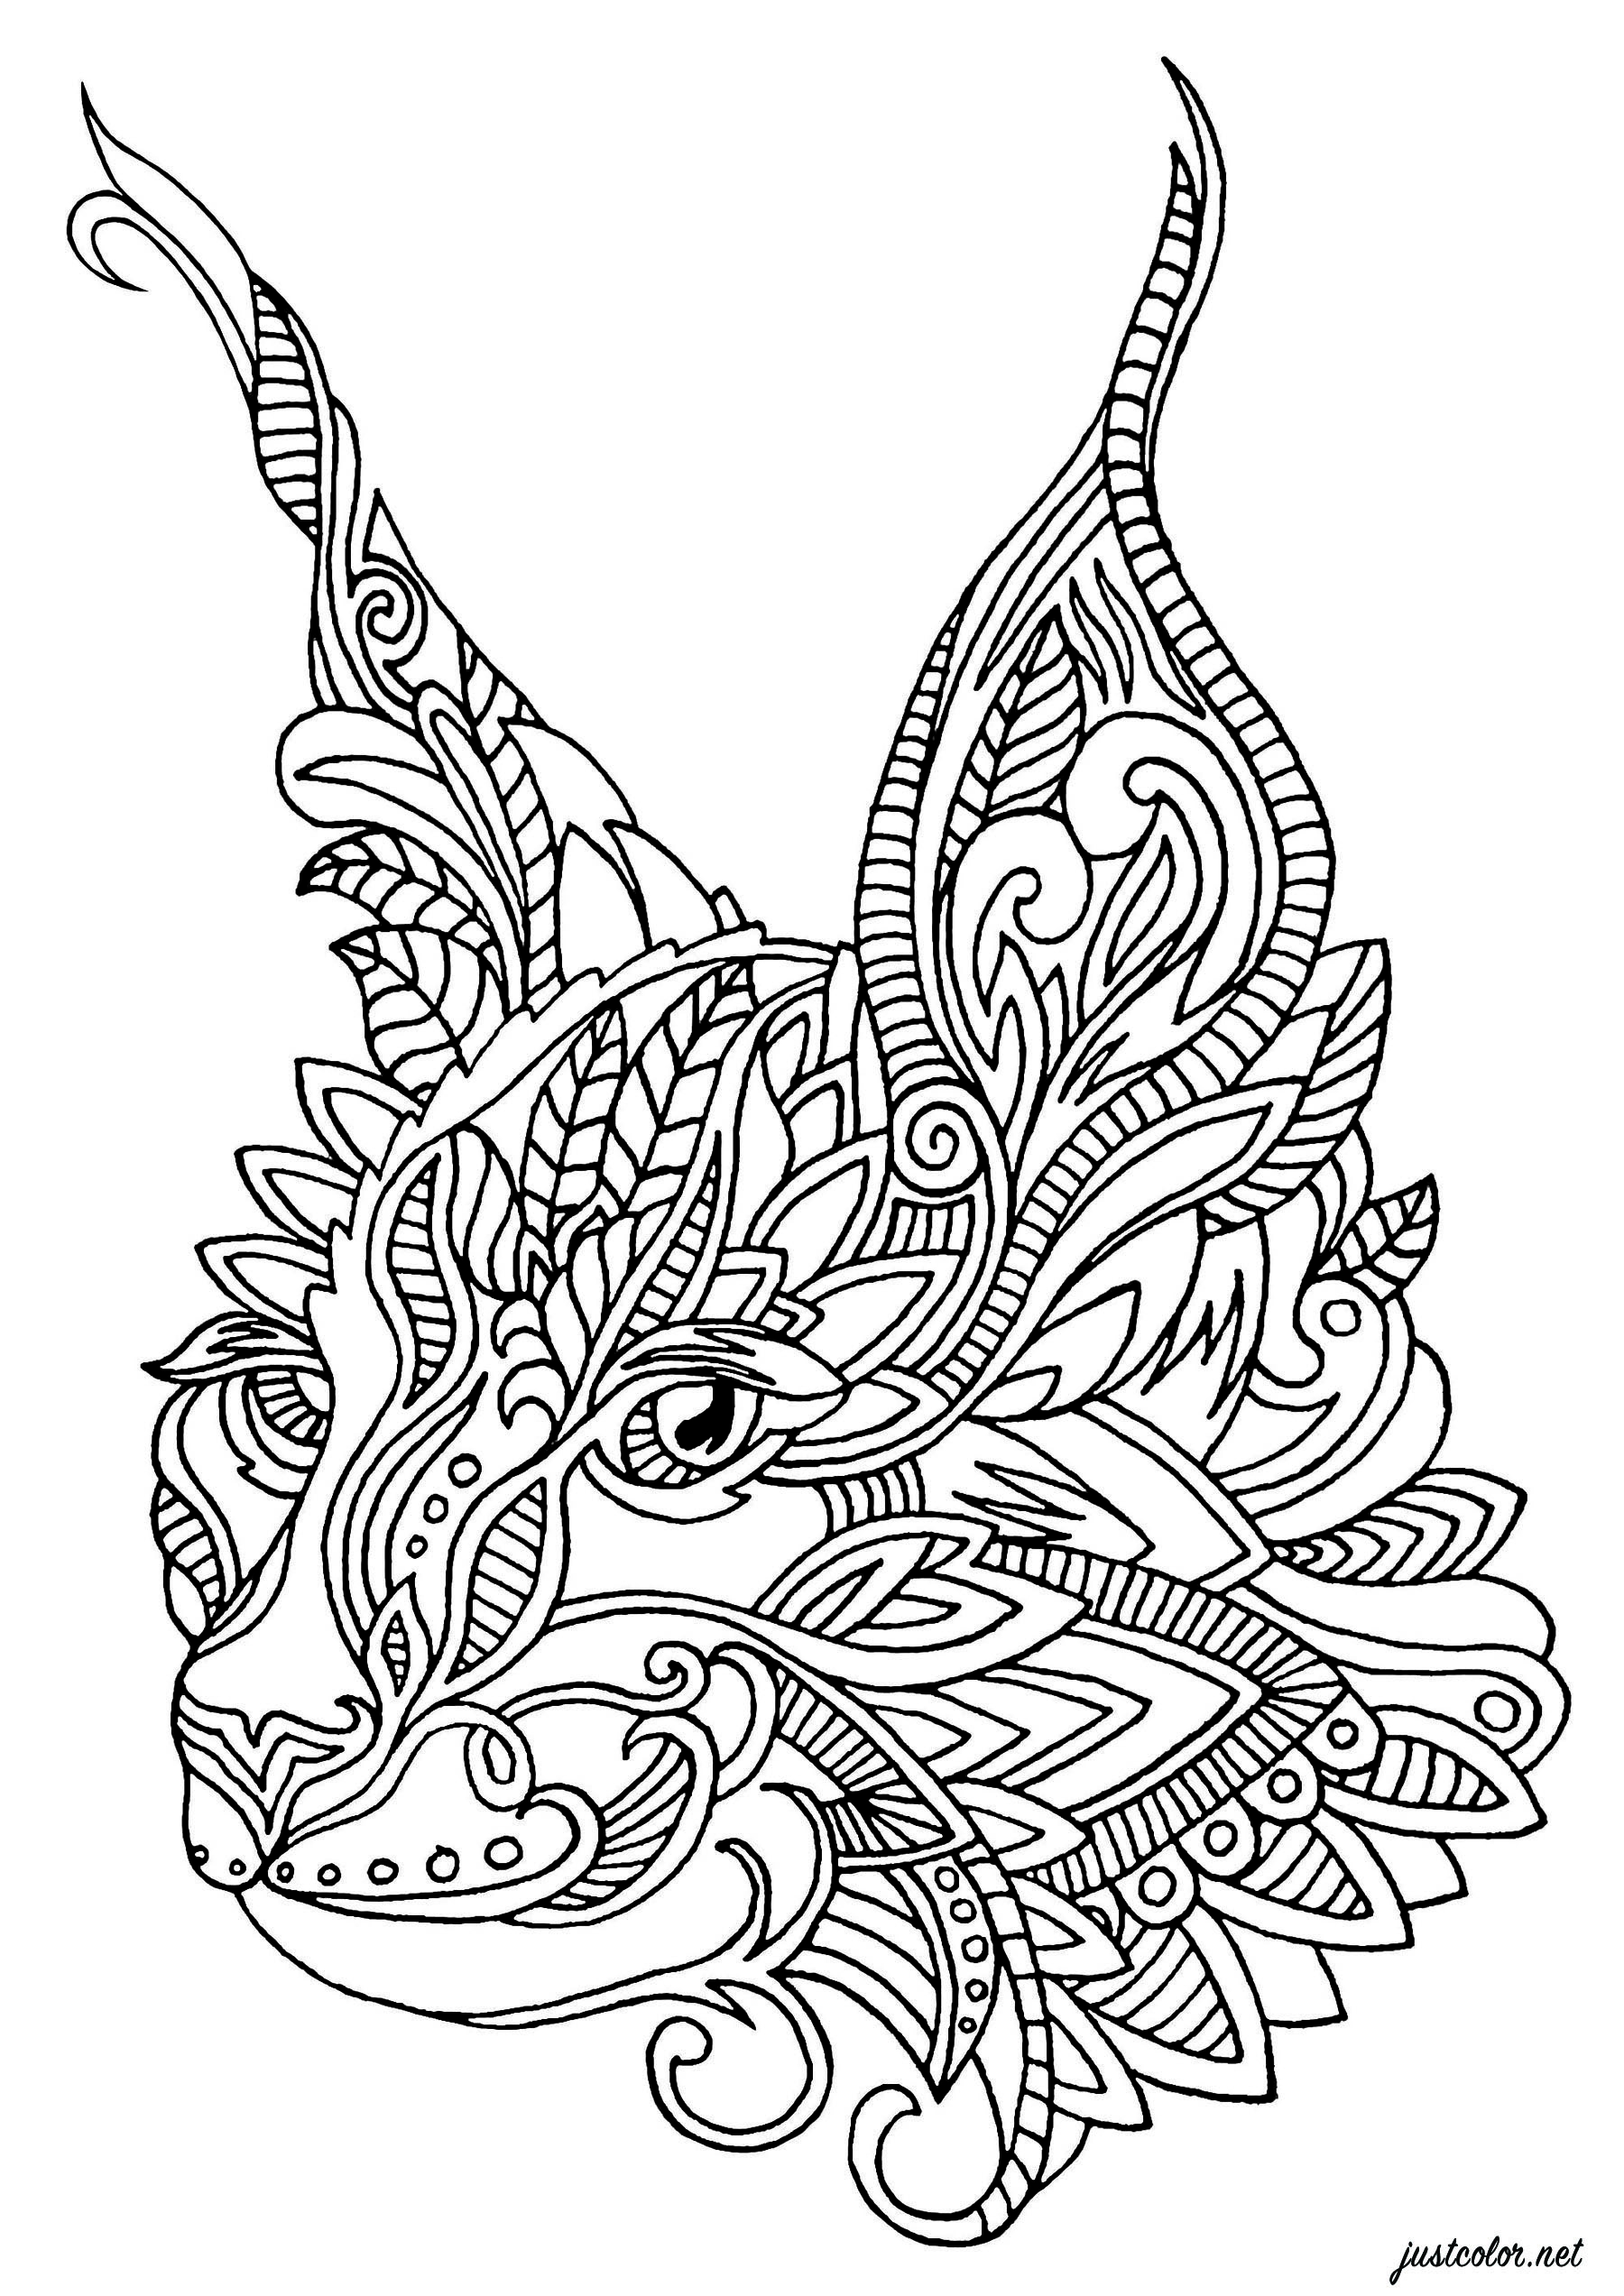 Cute cat head with zentangle details